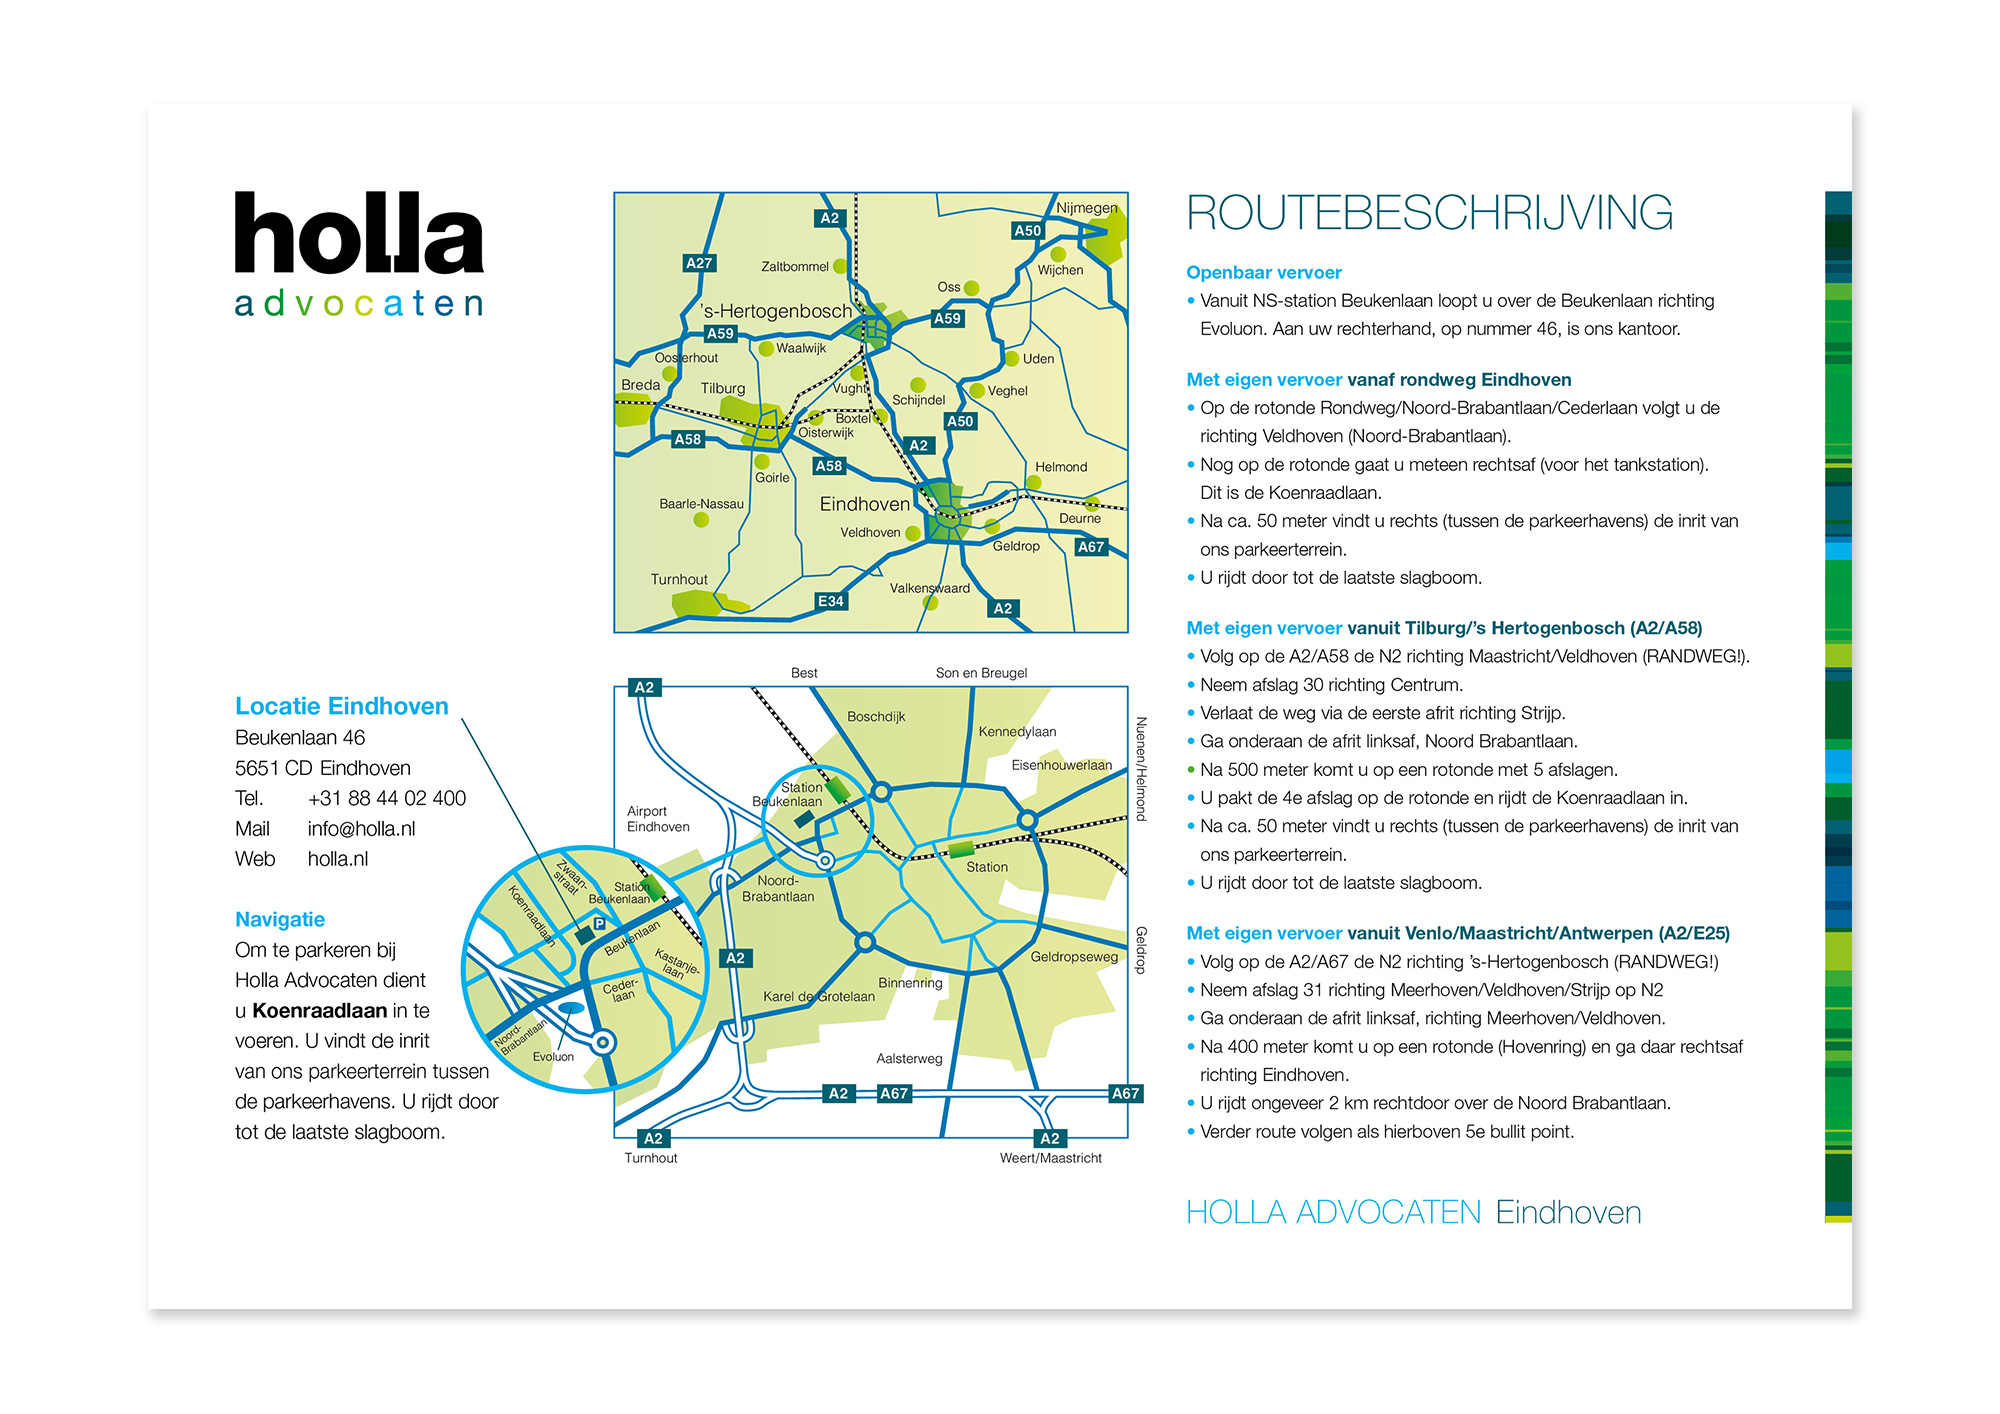 Routebeschrijving-Holla_Eindhoven